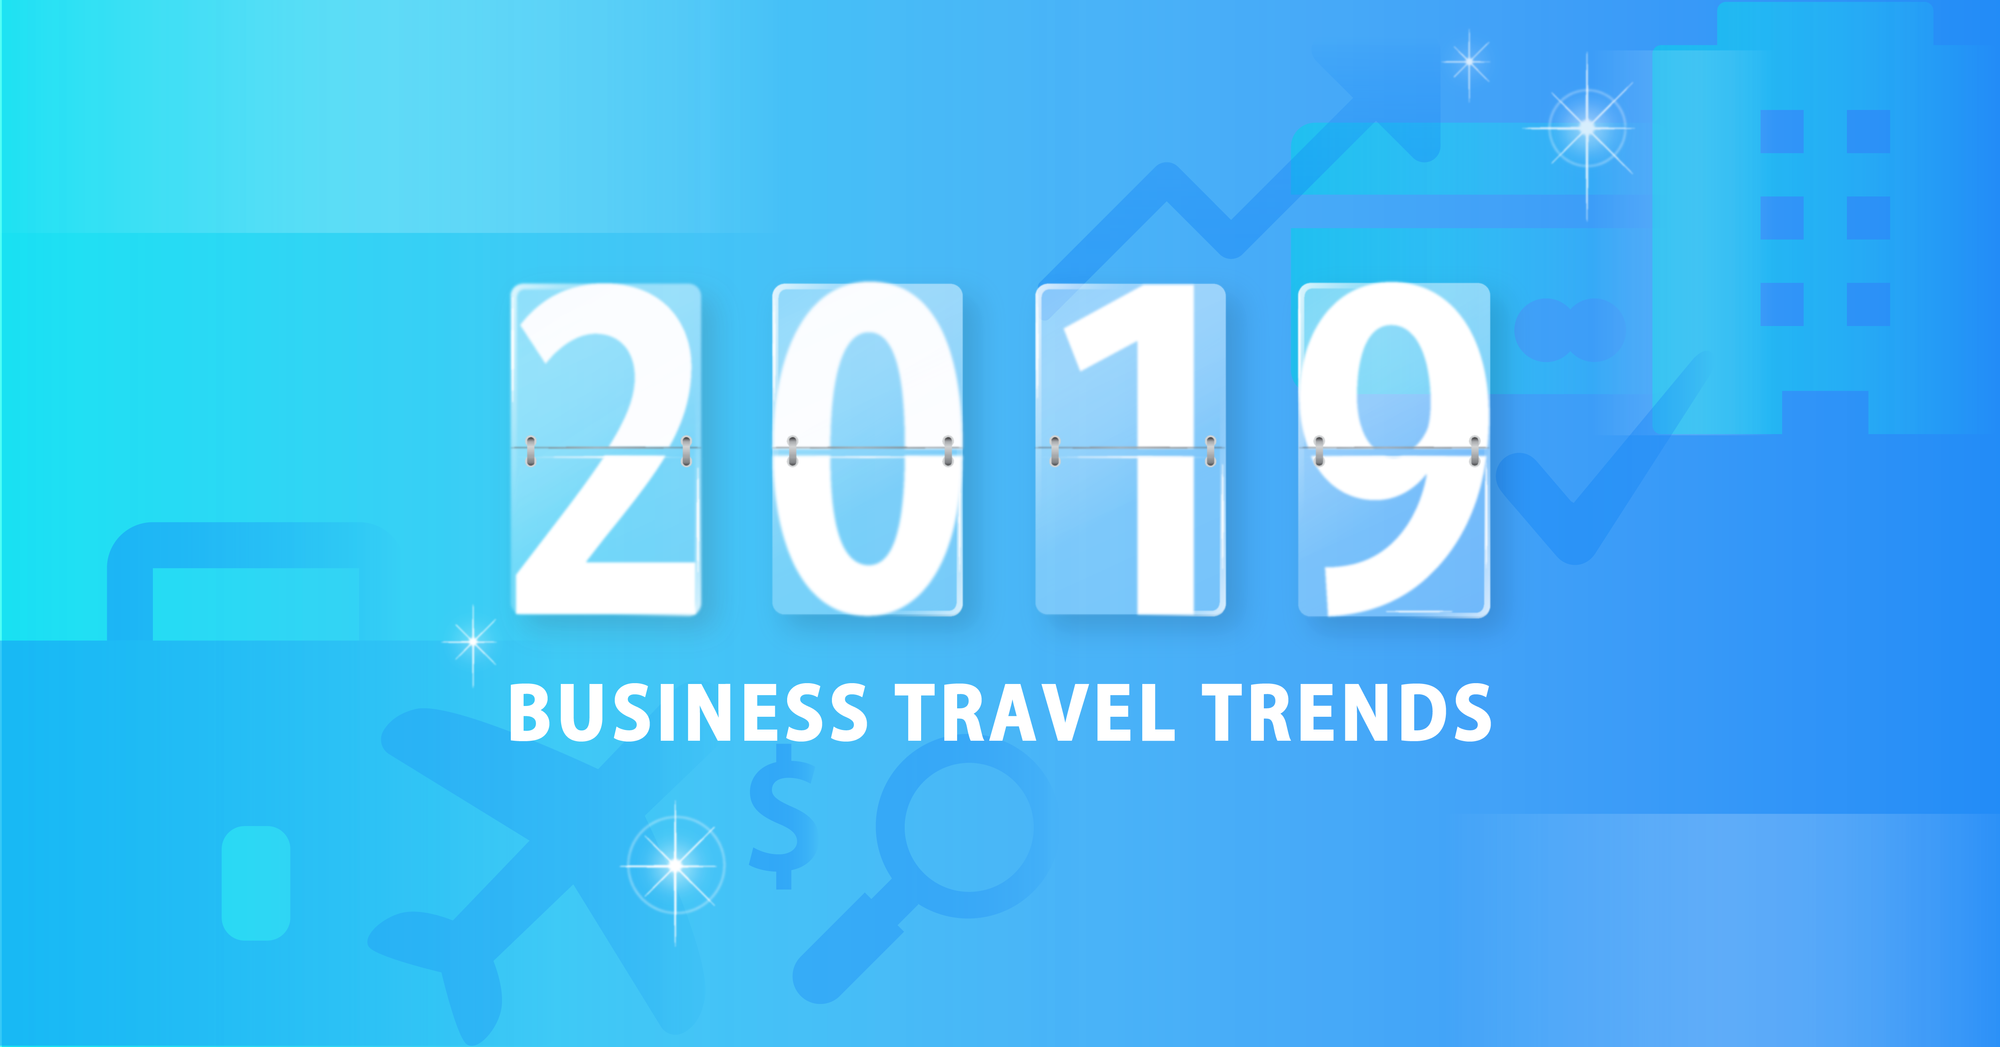 Keep an eye out for these five business travel trends in Asia in 2019